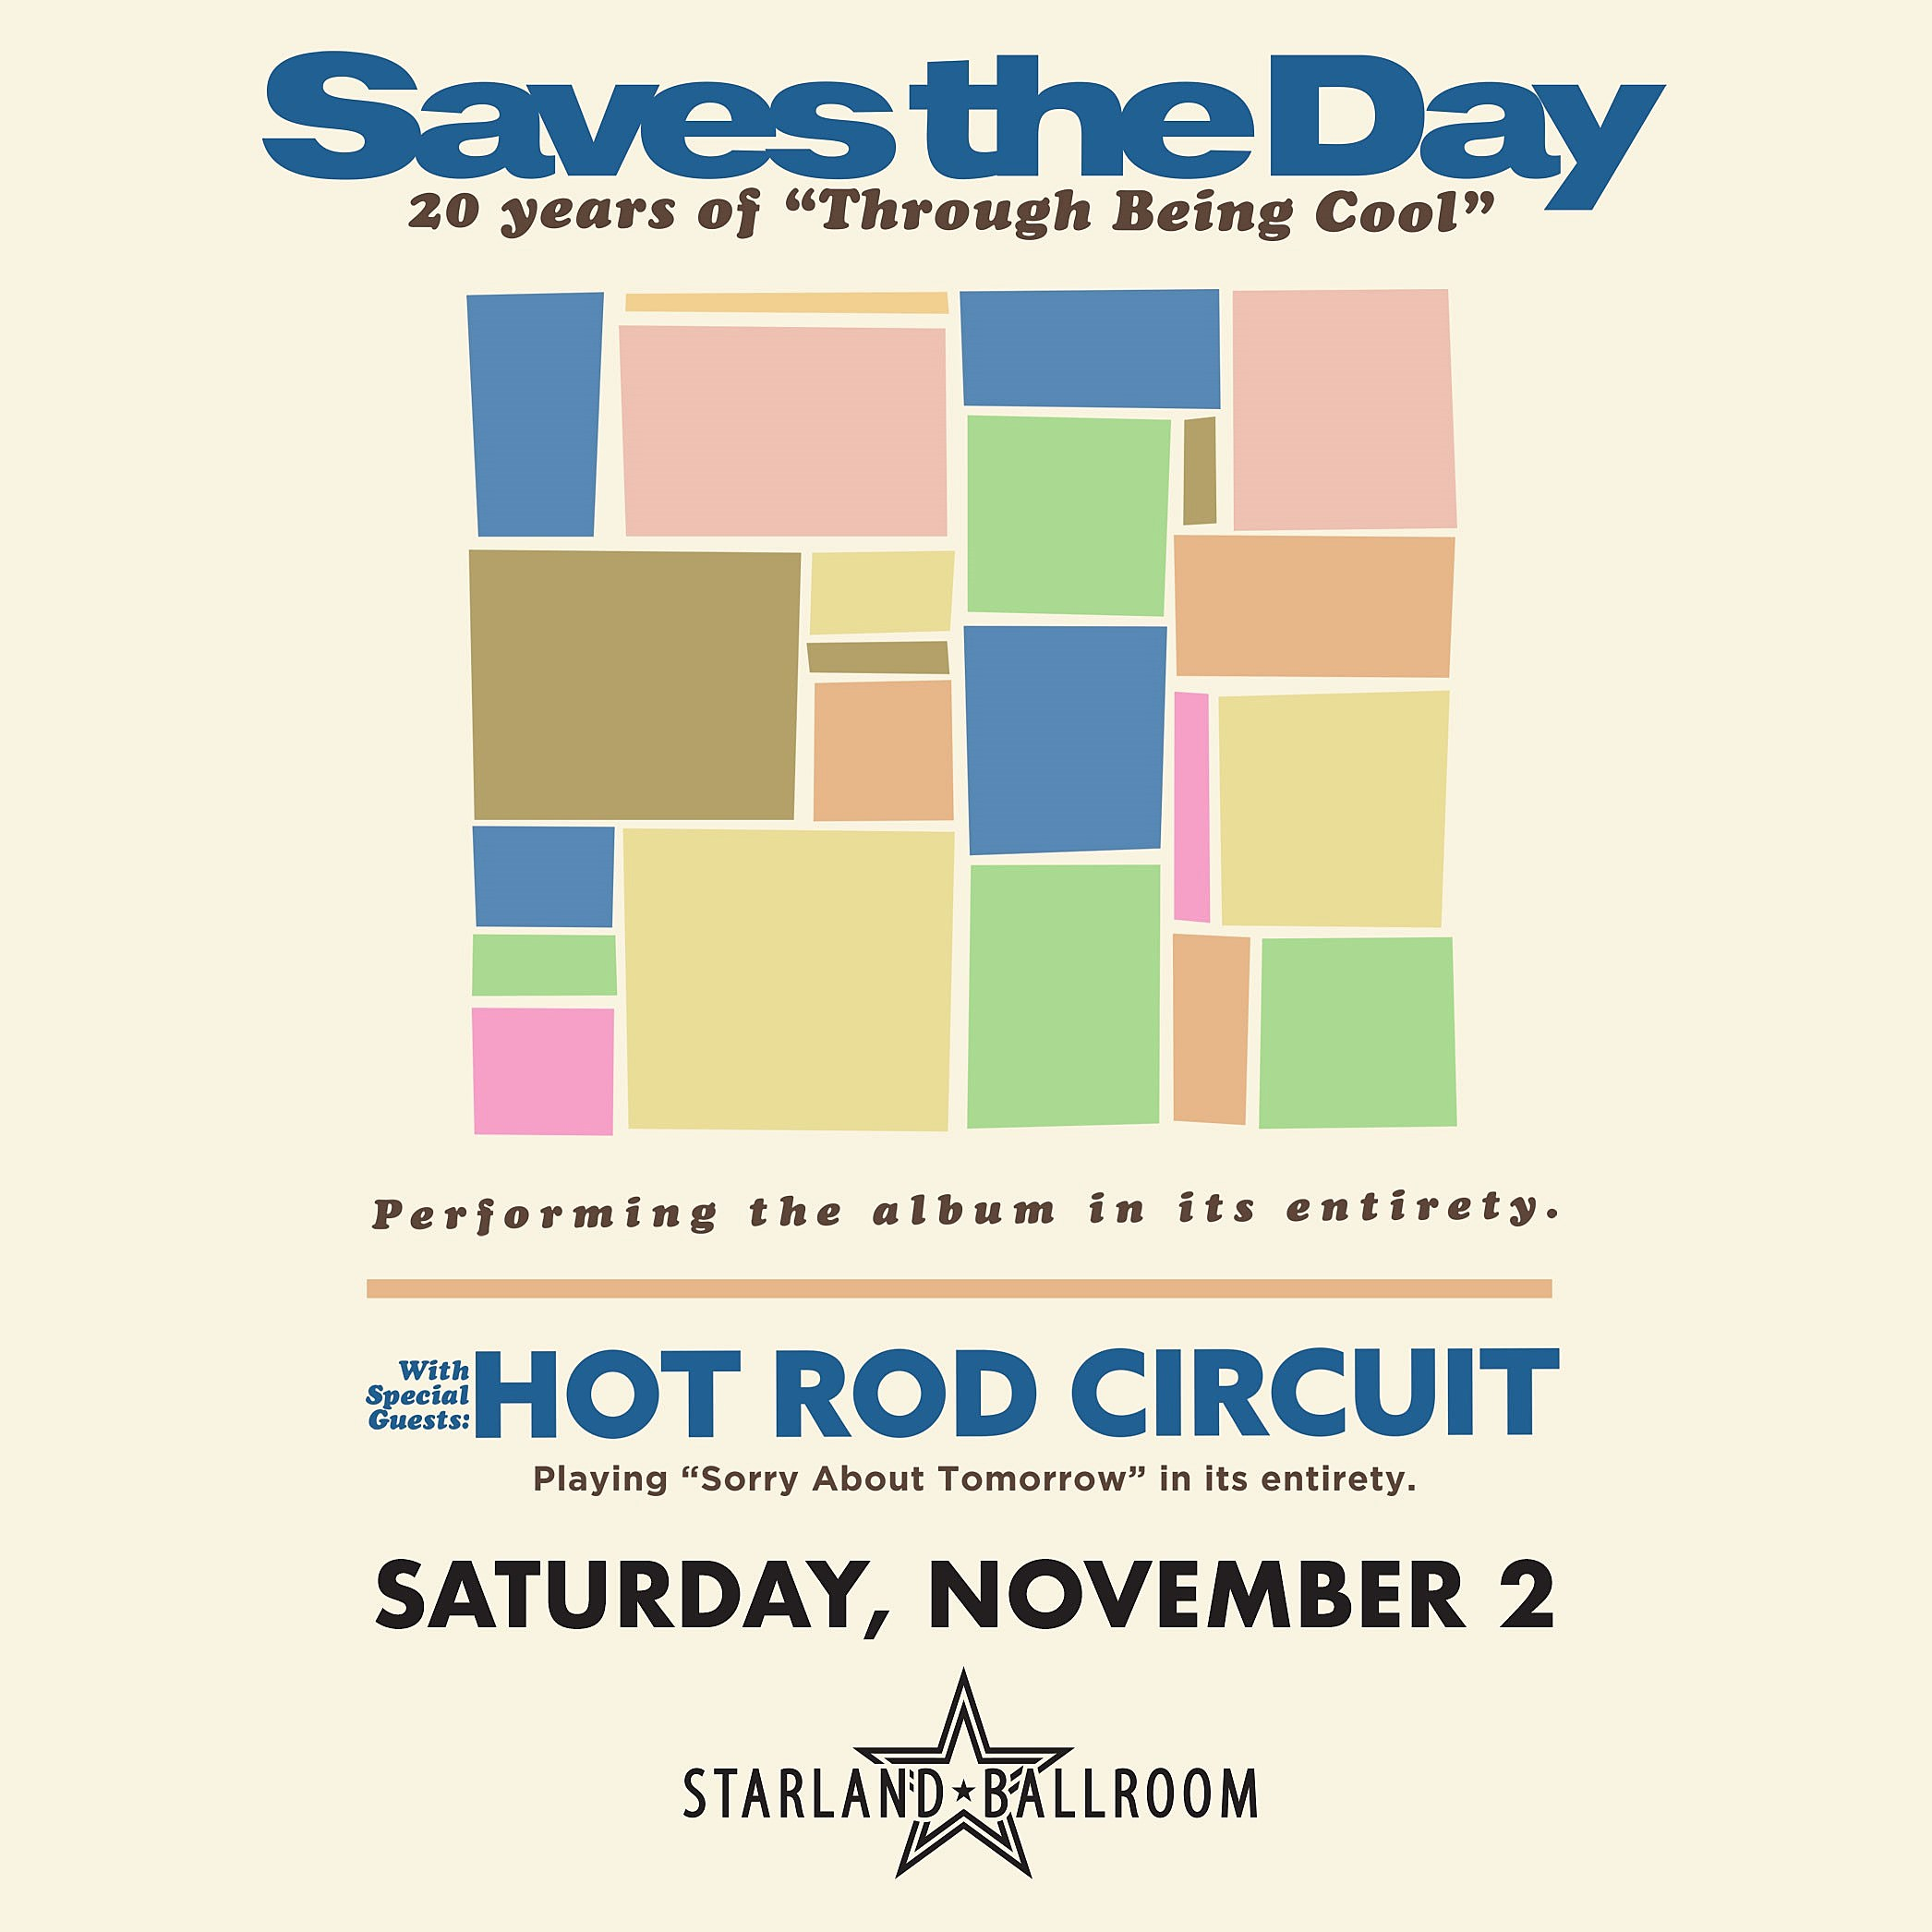 Saves the Day NJ